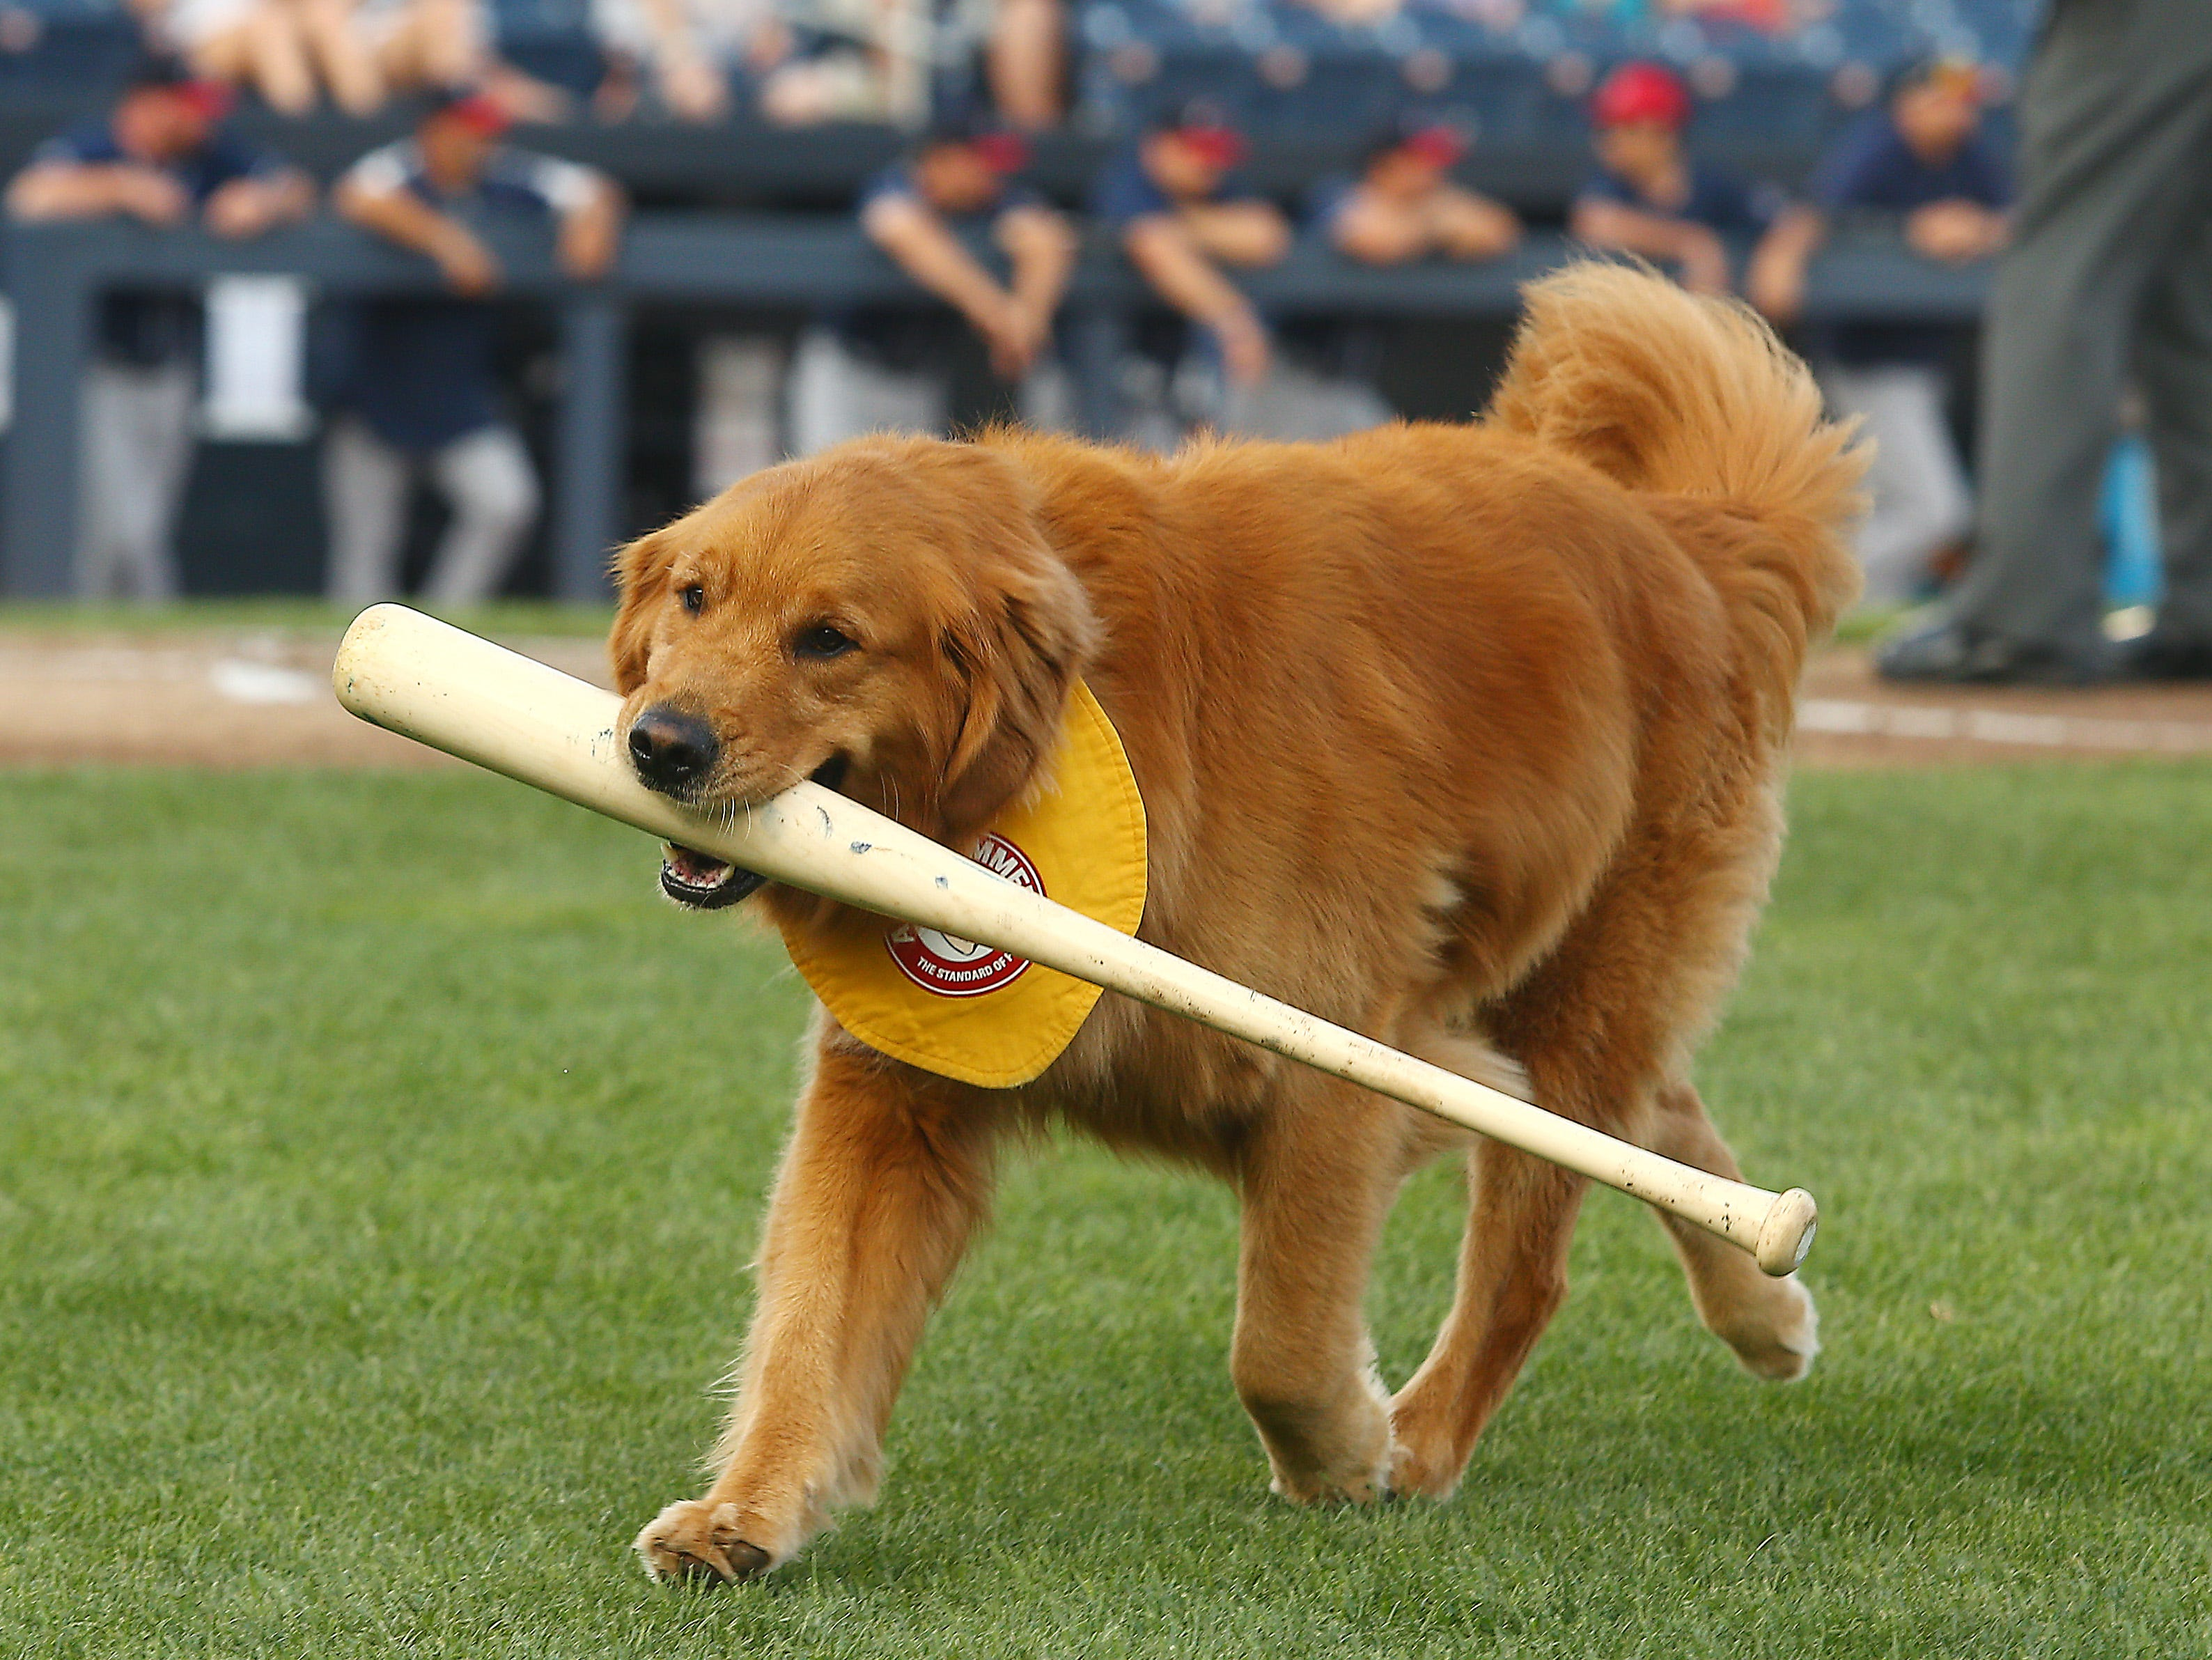 Trenton Thunder's third-generation bat dog Rookie, a 4-year-old Golden Retriever in action at ARM & HAMMER Park in Trenton. The Double-A affiliate of the Yankees have had a bat dog since 2002, Rookie keeping it in the family, taking after his grandfather, the Thunders original bat dog, Chase and his late father, Derby. July 2, 2018. Trenton, NJ